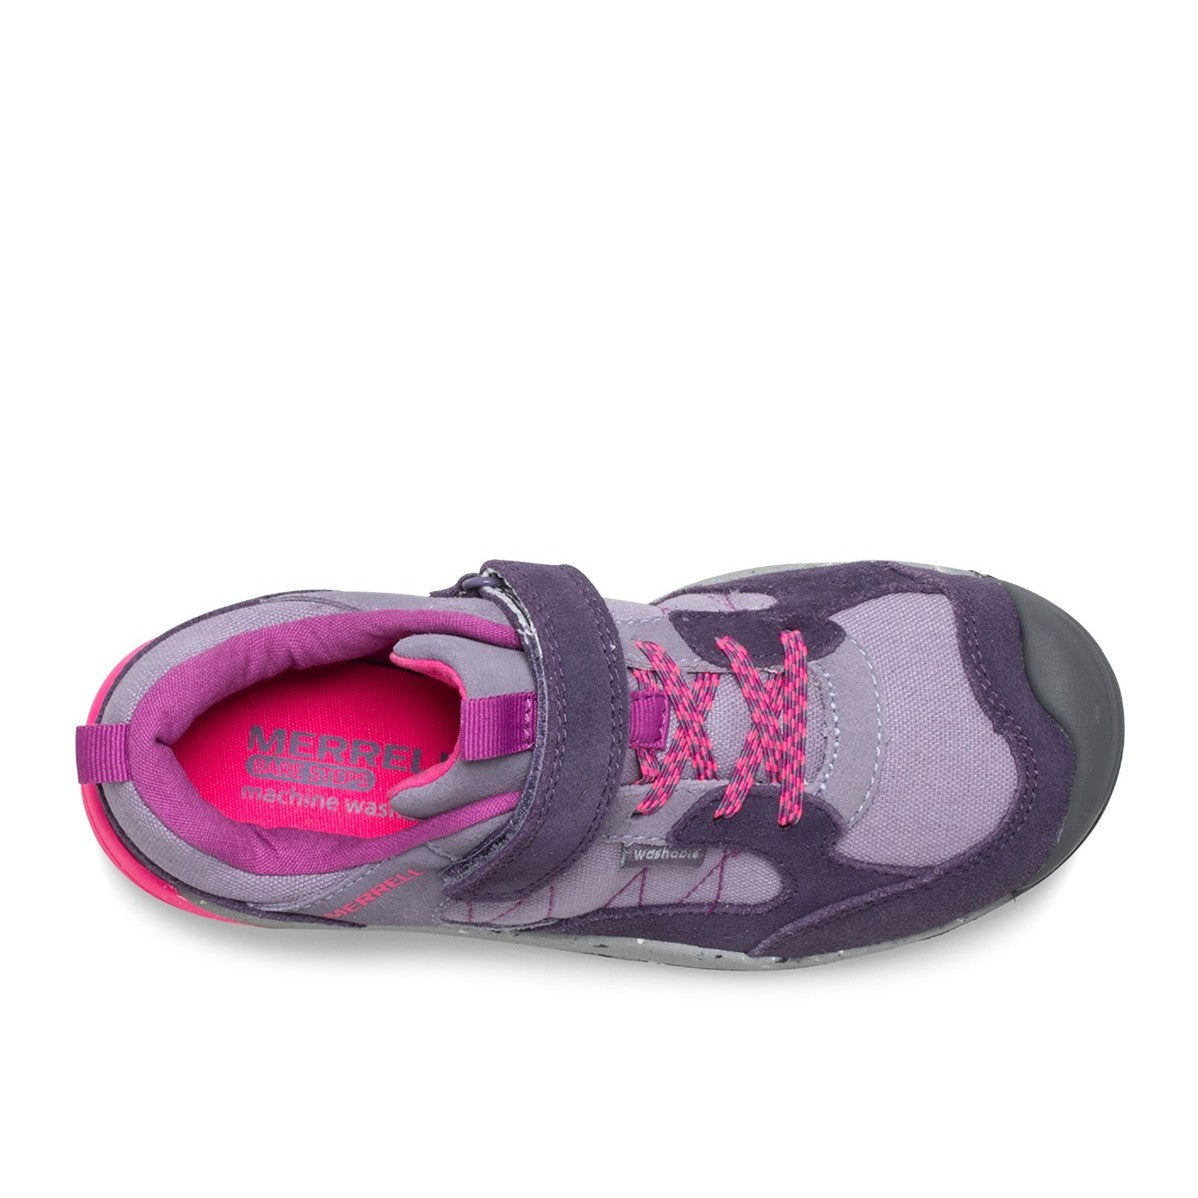 Merrell Kids Bare Steps Alpine Shoe - Dusty Purple